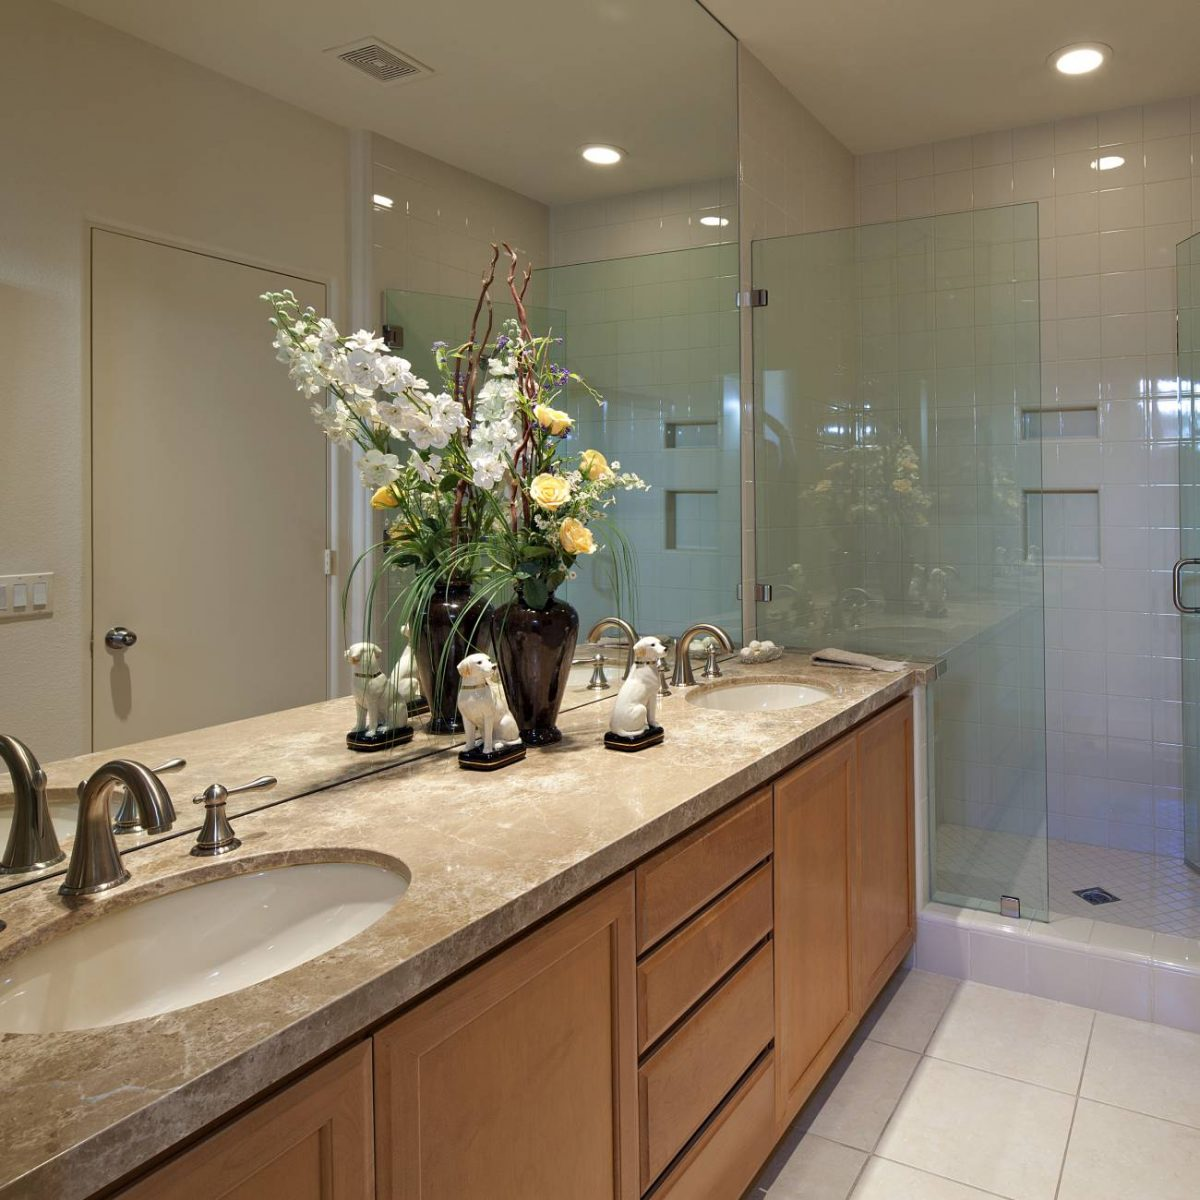 cottonwood-heights-utah-professional-house-cleaning-service-sq